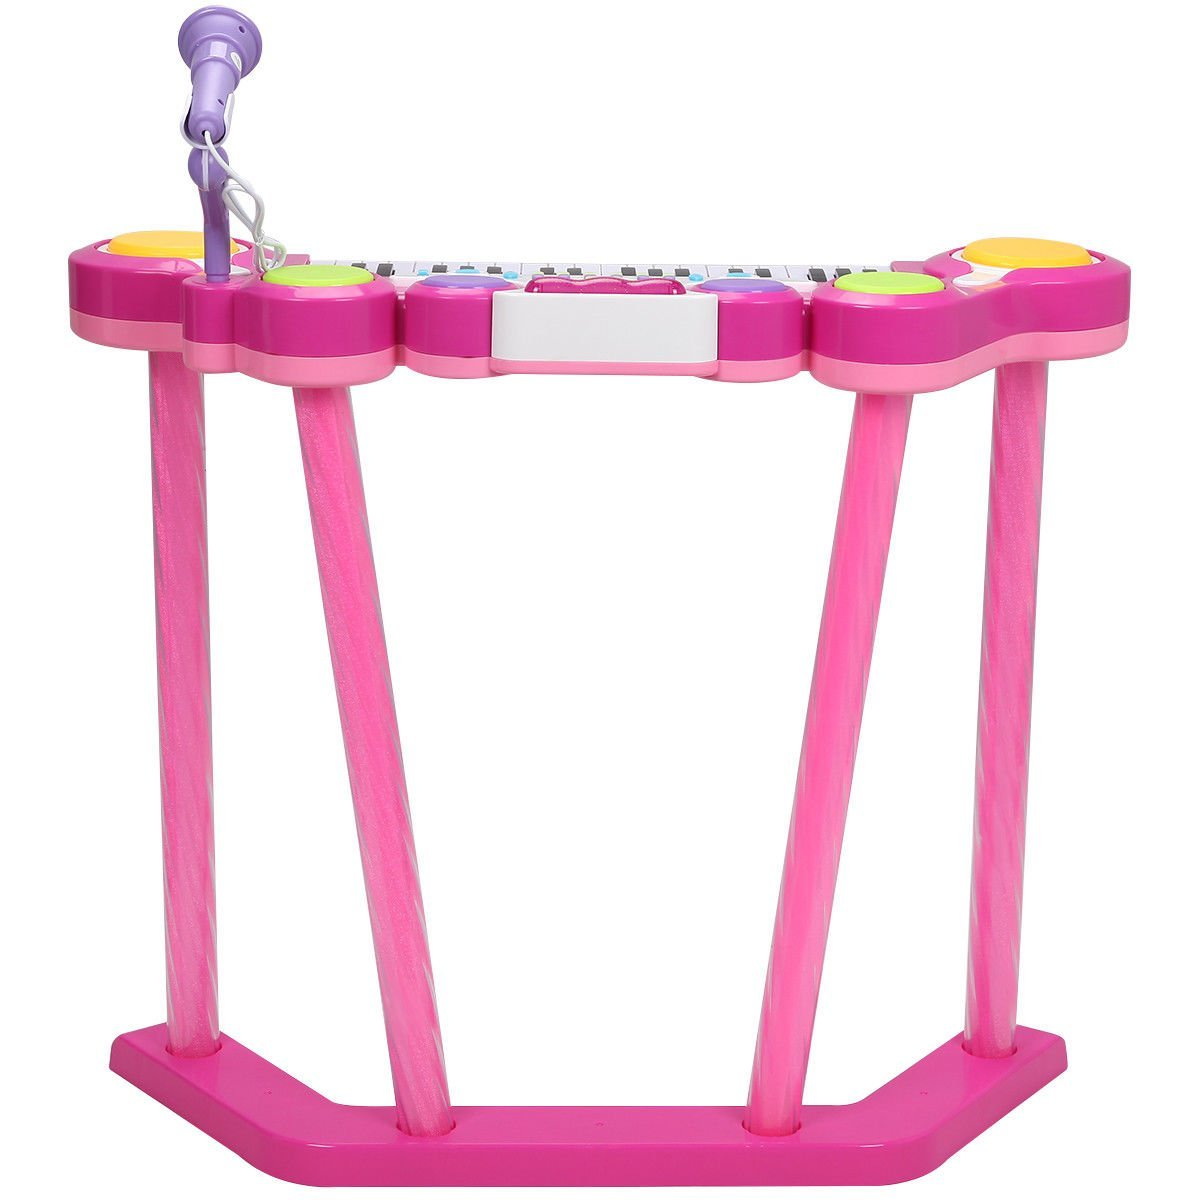 Costzon 2 In 1 Electronic Keyboard and Drum Musical 37-Key Toy Electronic Organ Piano and Drum with Microphone and Flashing Legs (Pink)5